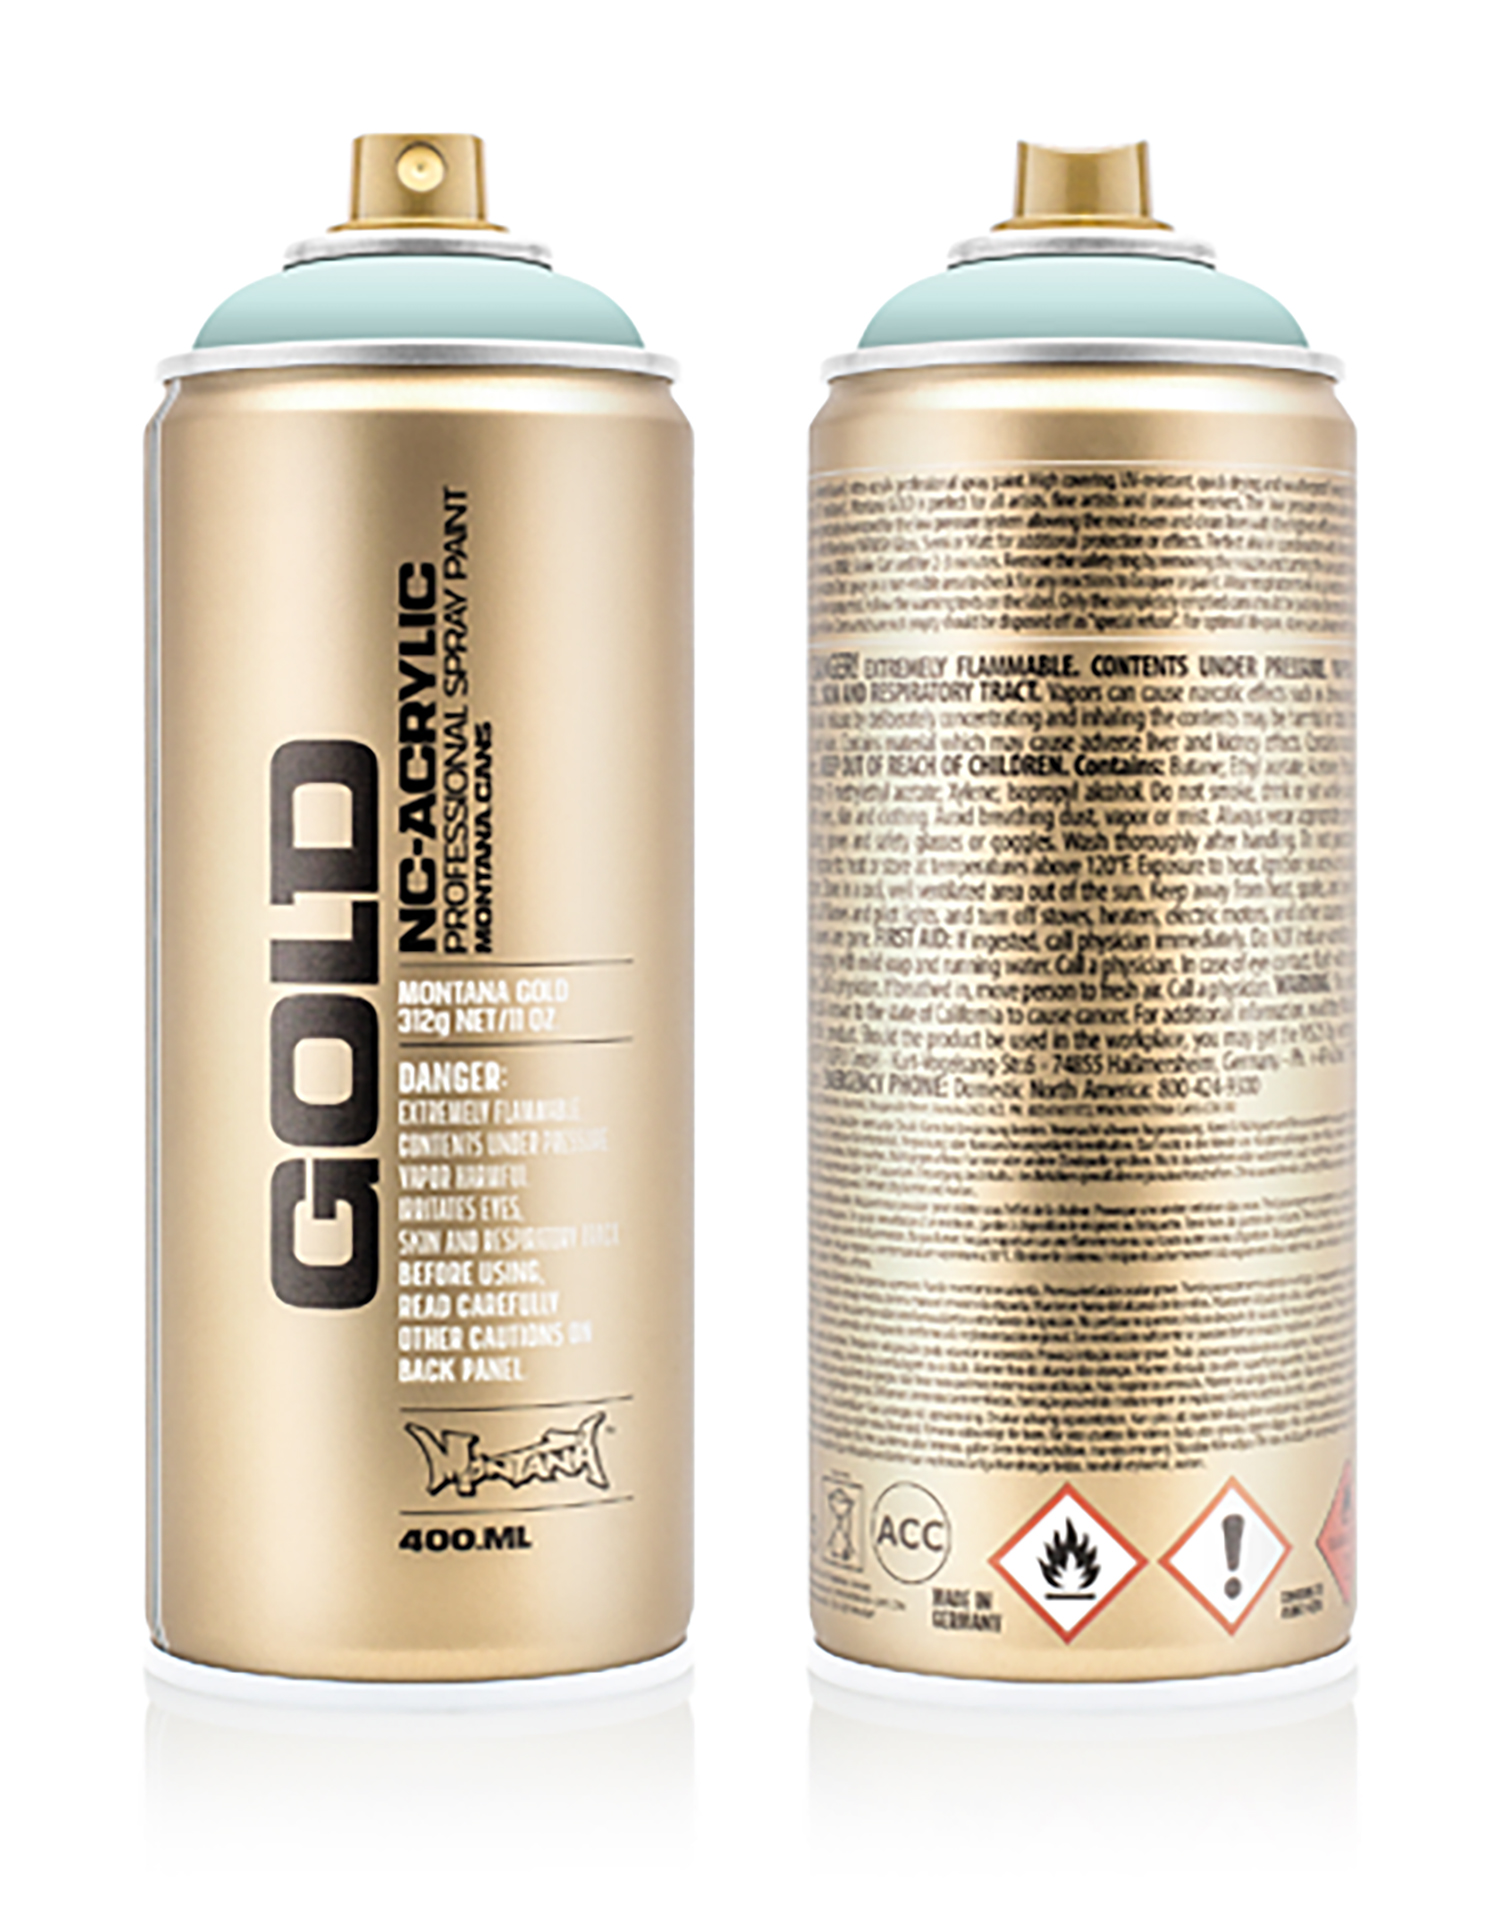 MONTANA-GOLD-SPRAY-400ML-G-6210